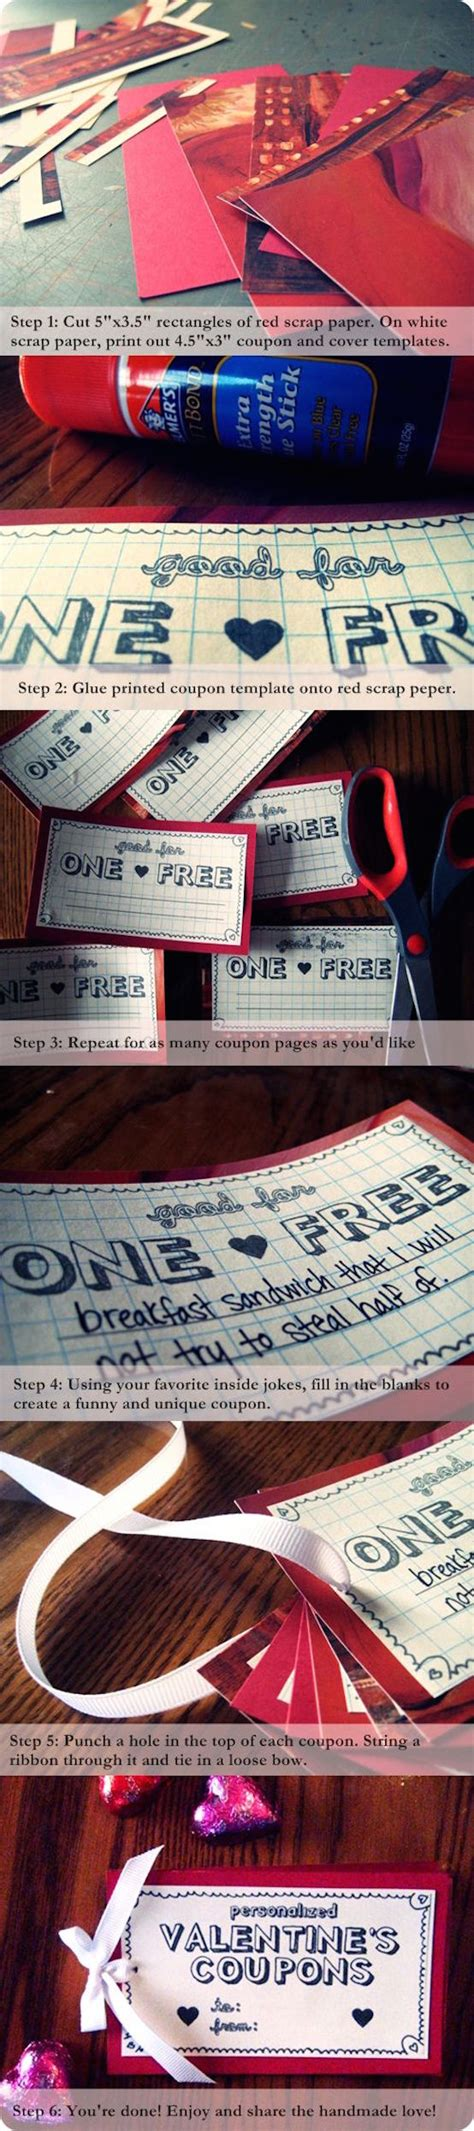 corny christmas gift ideas 15 diy s gifts coupons to inspire you feed inspiration